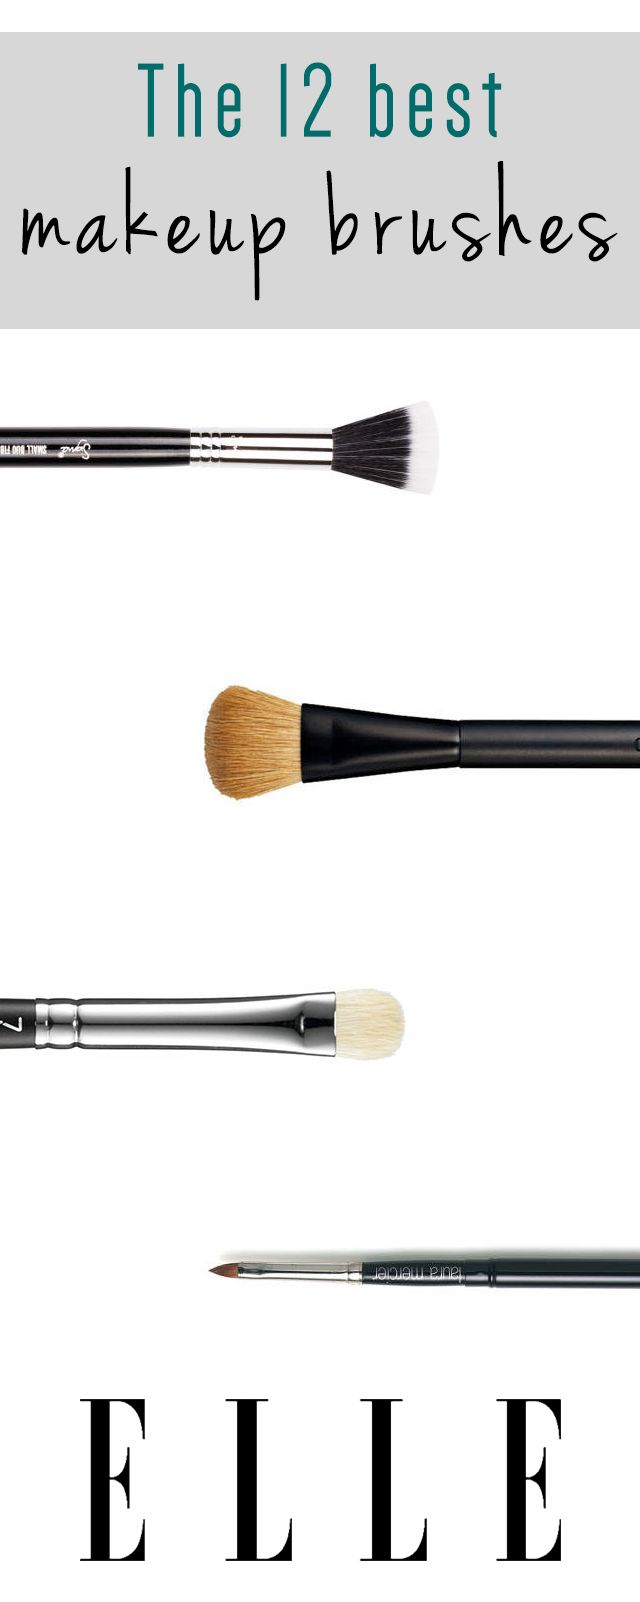 The 12 best makeup brushes.